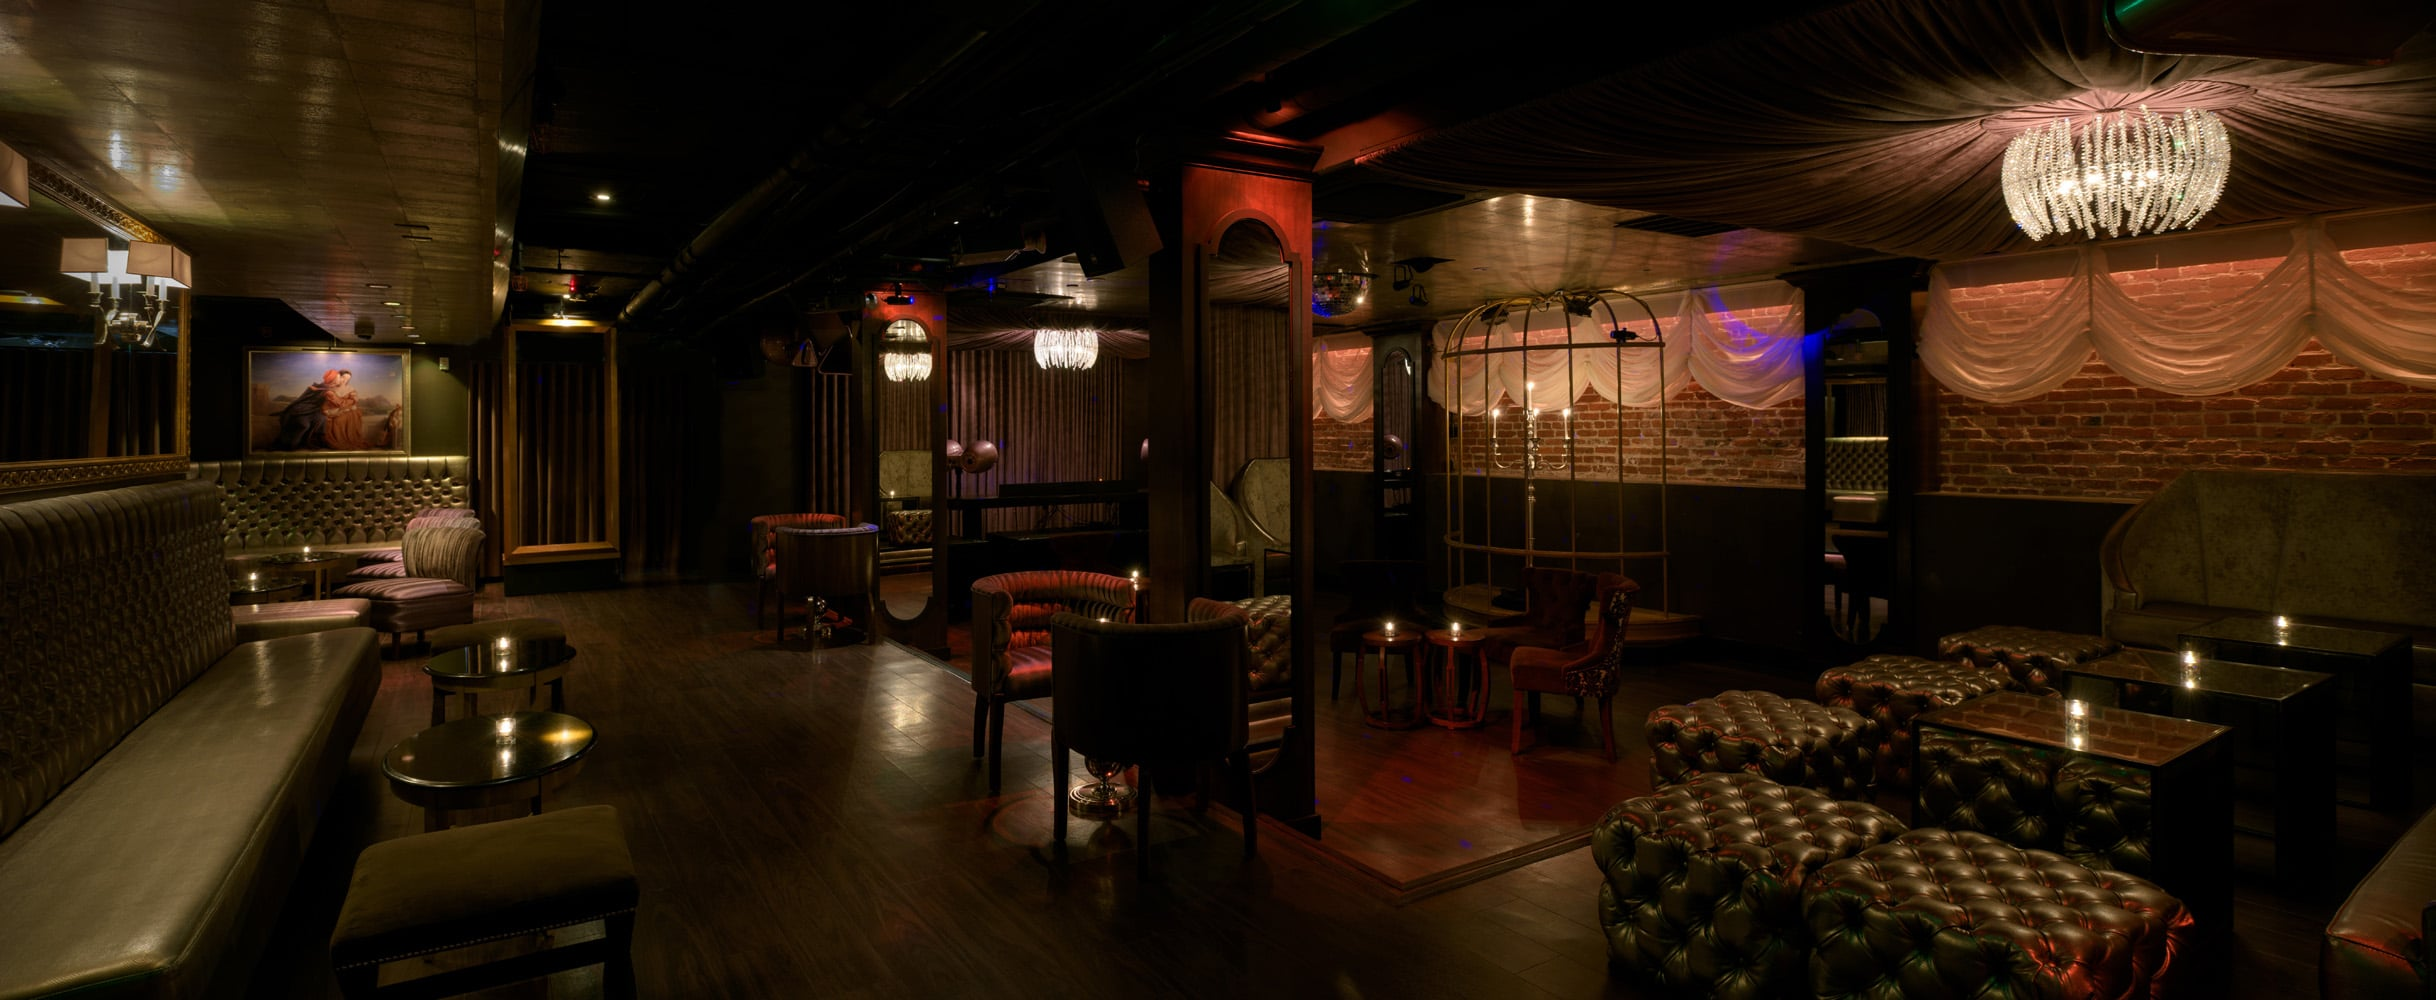 8340_d810a_Hawthorn_Lounge_San_Francisco_Commercial_Architecture_Photography_pan_edit_1